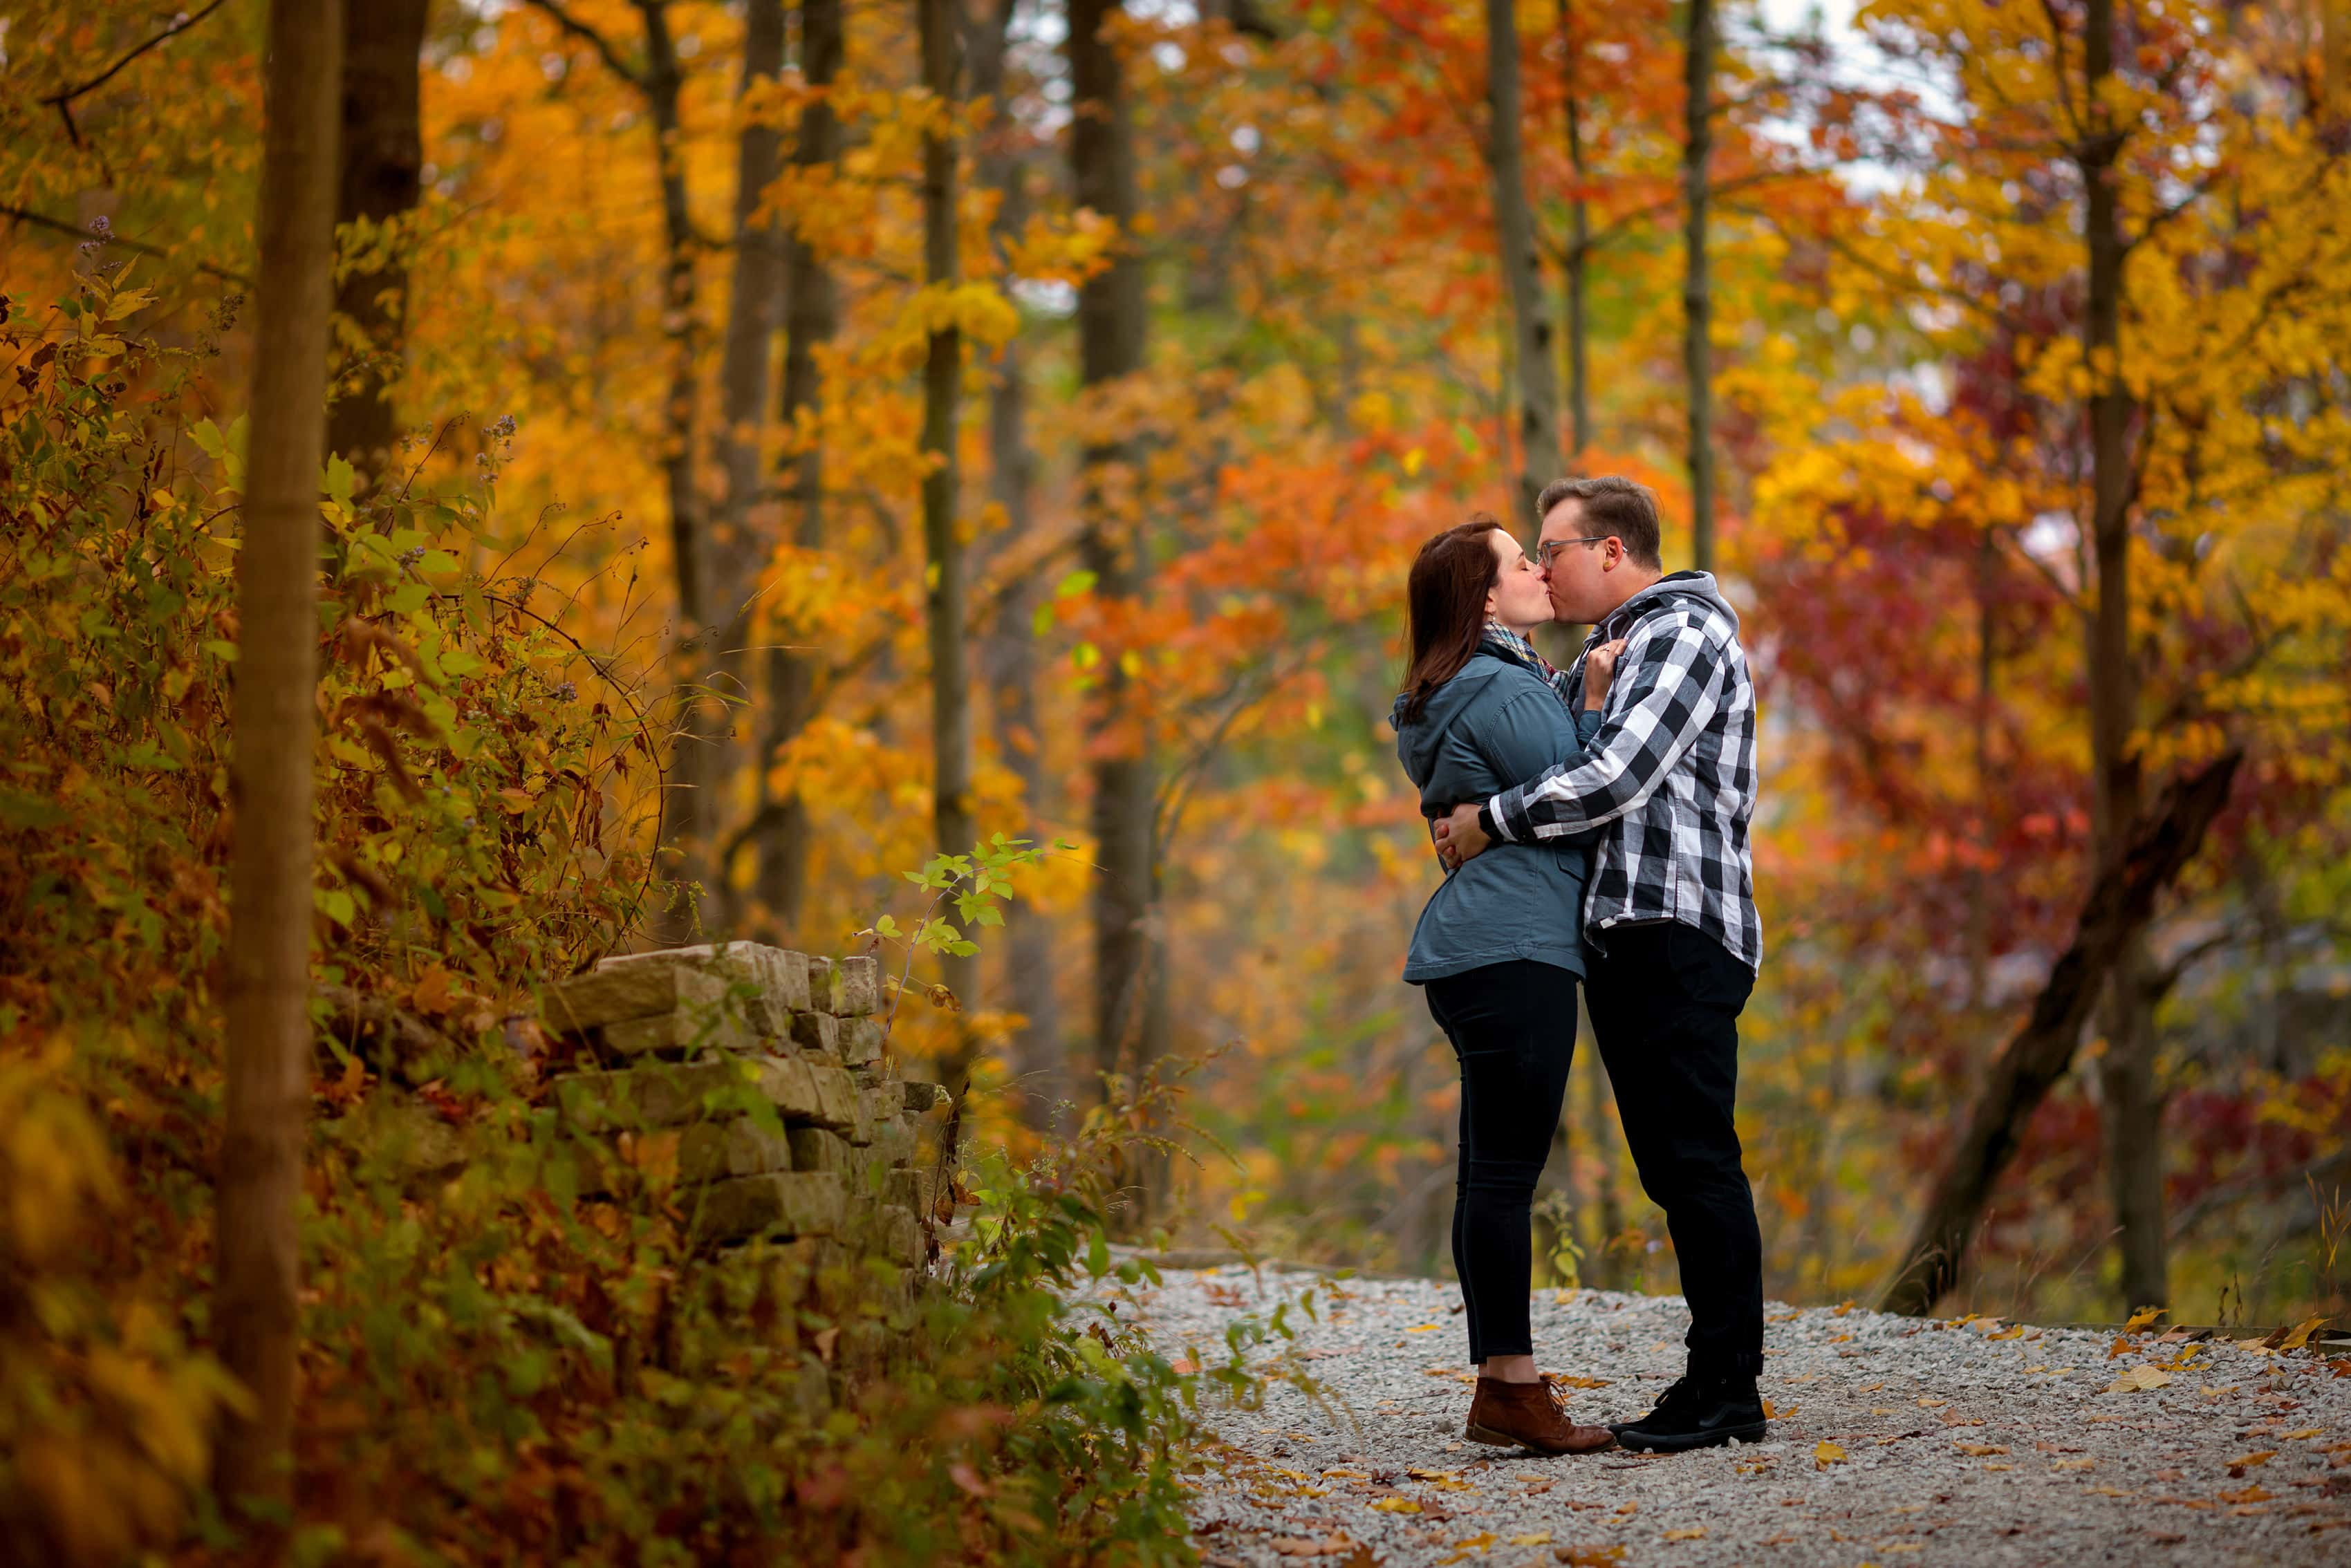 couple kisses with colorful trees in the background during engagement session at Rosewood Park in Highland Park, Illinois